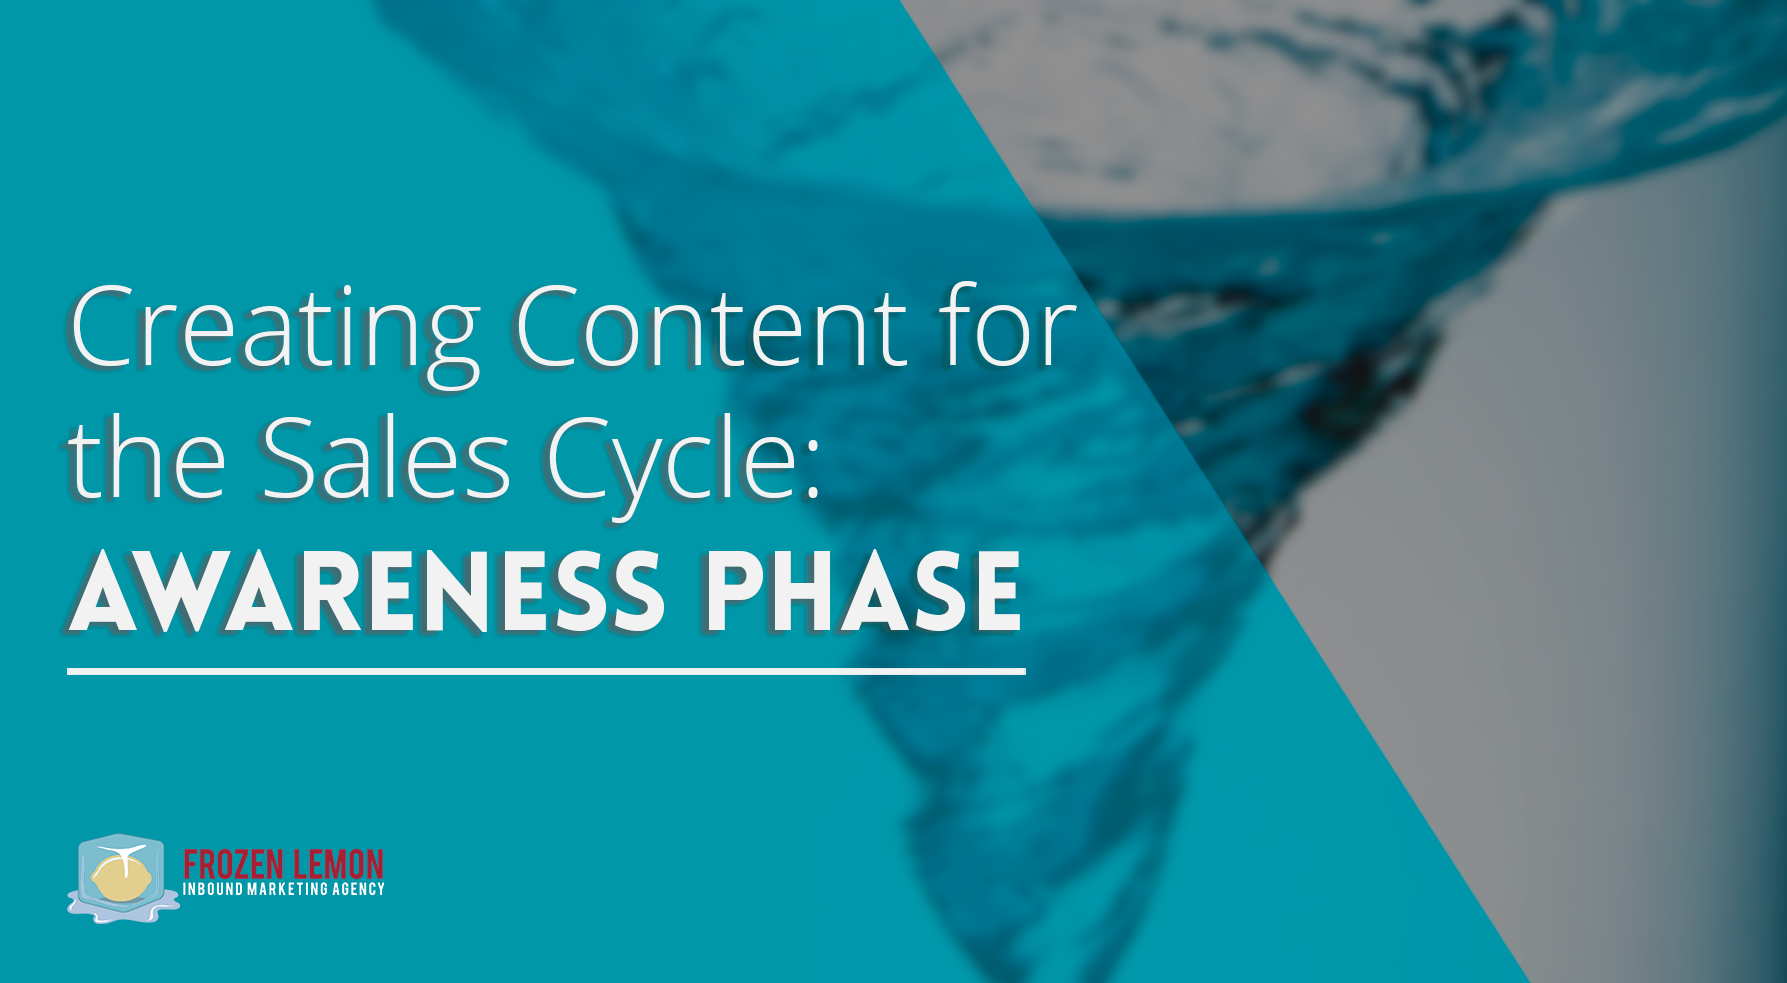 Creating Content for the Sales Cycle Awareness Phase